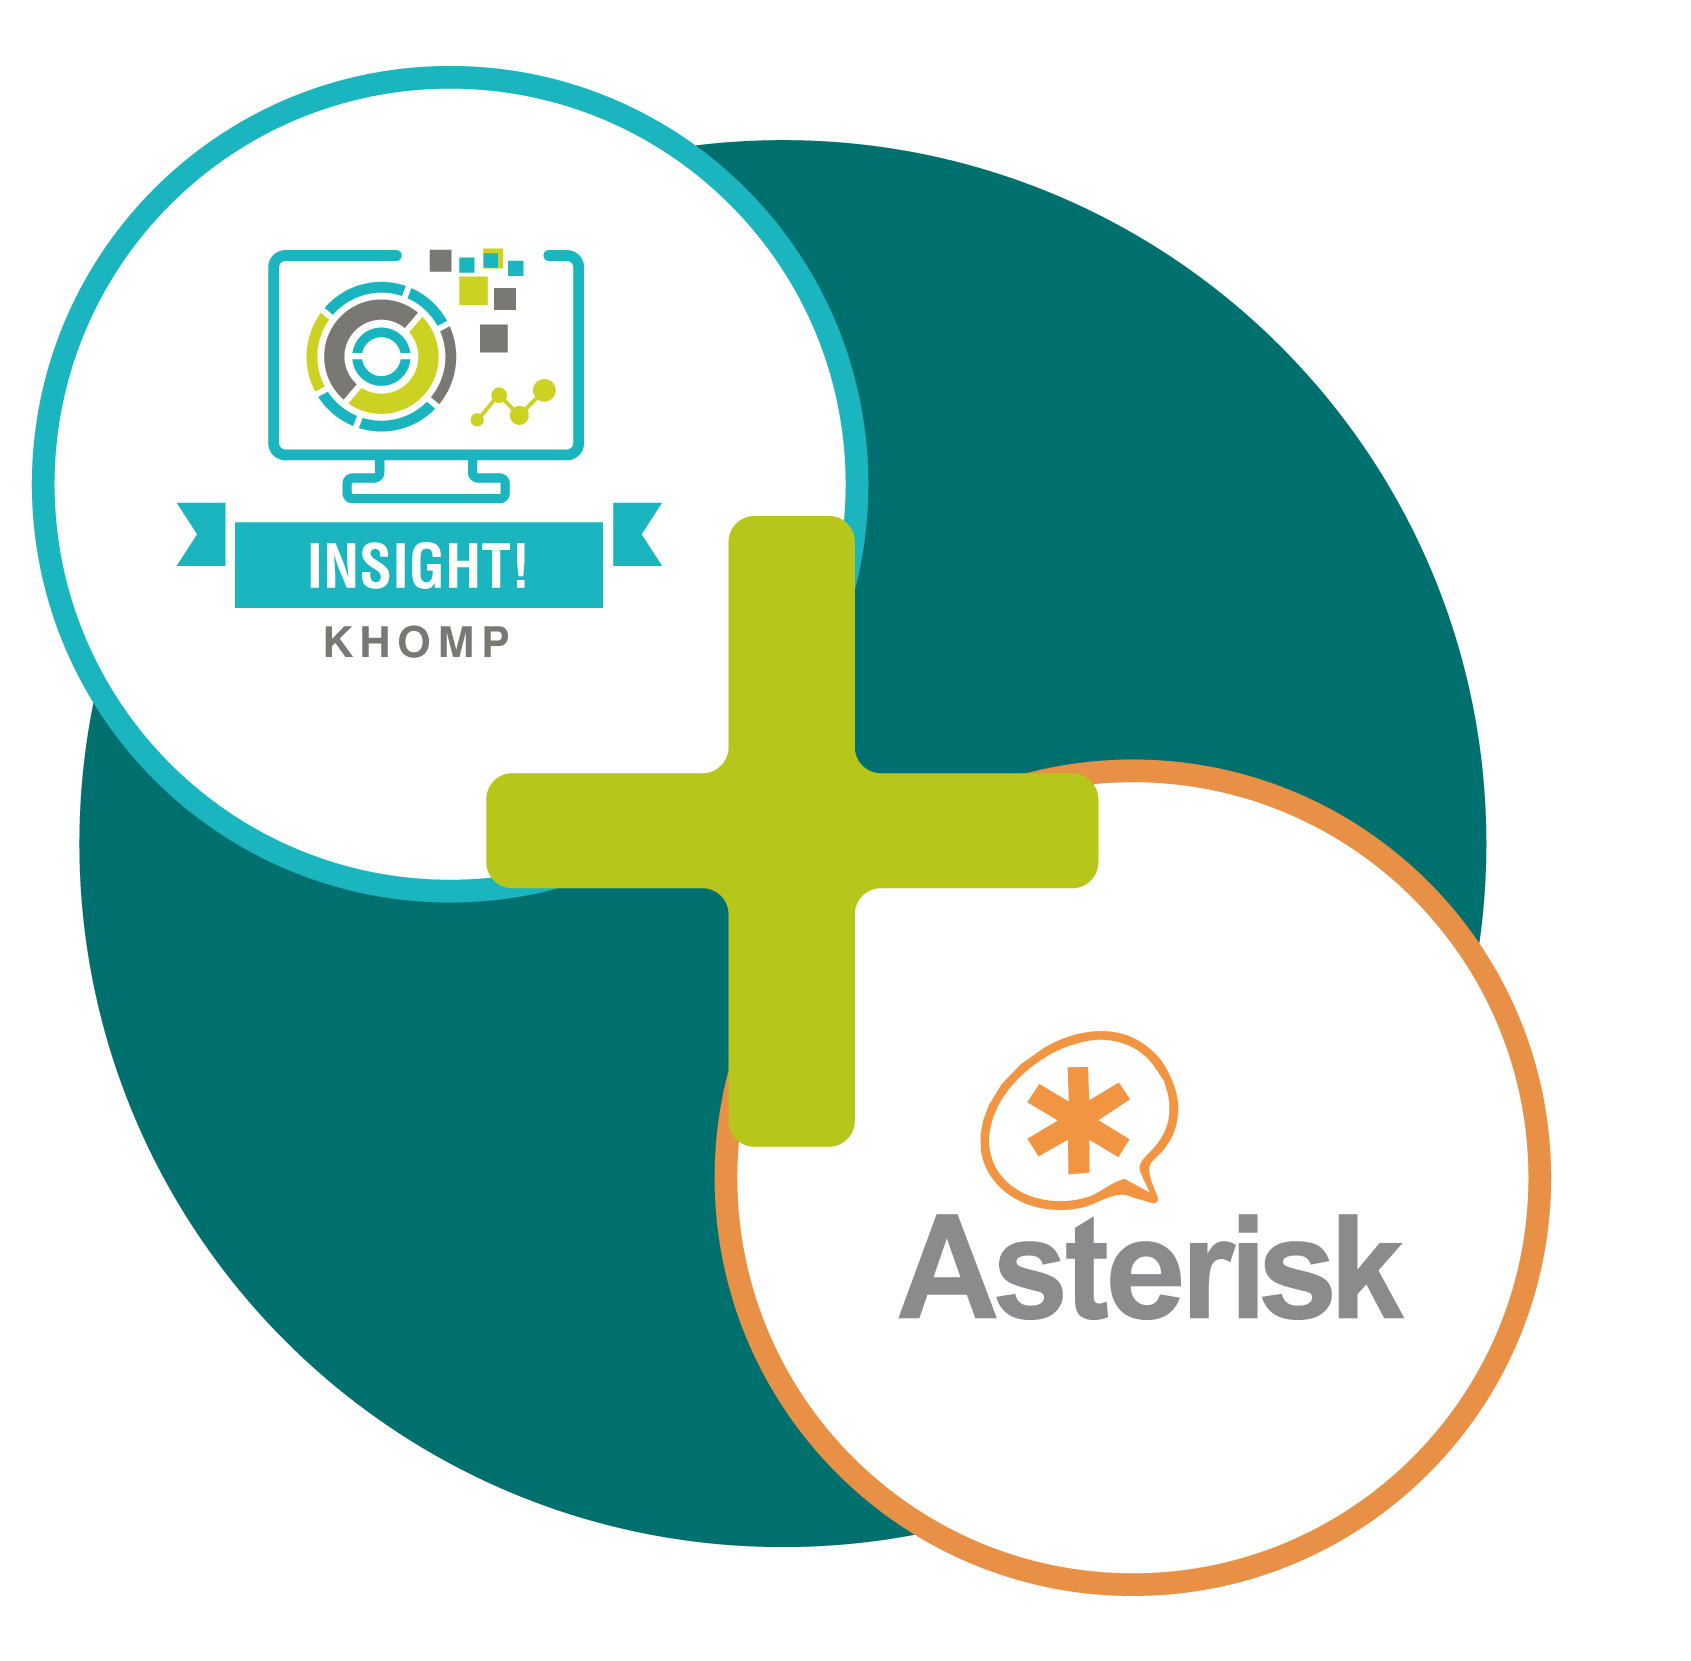 Logo Insight! for Asterisk